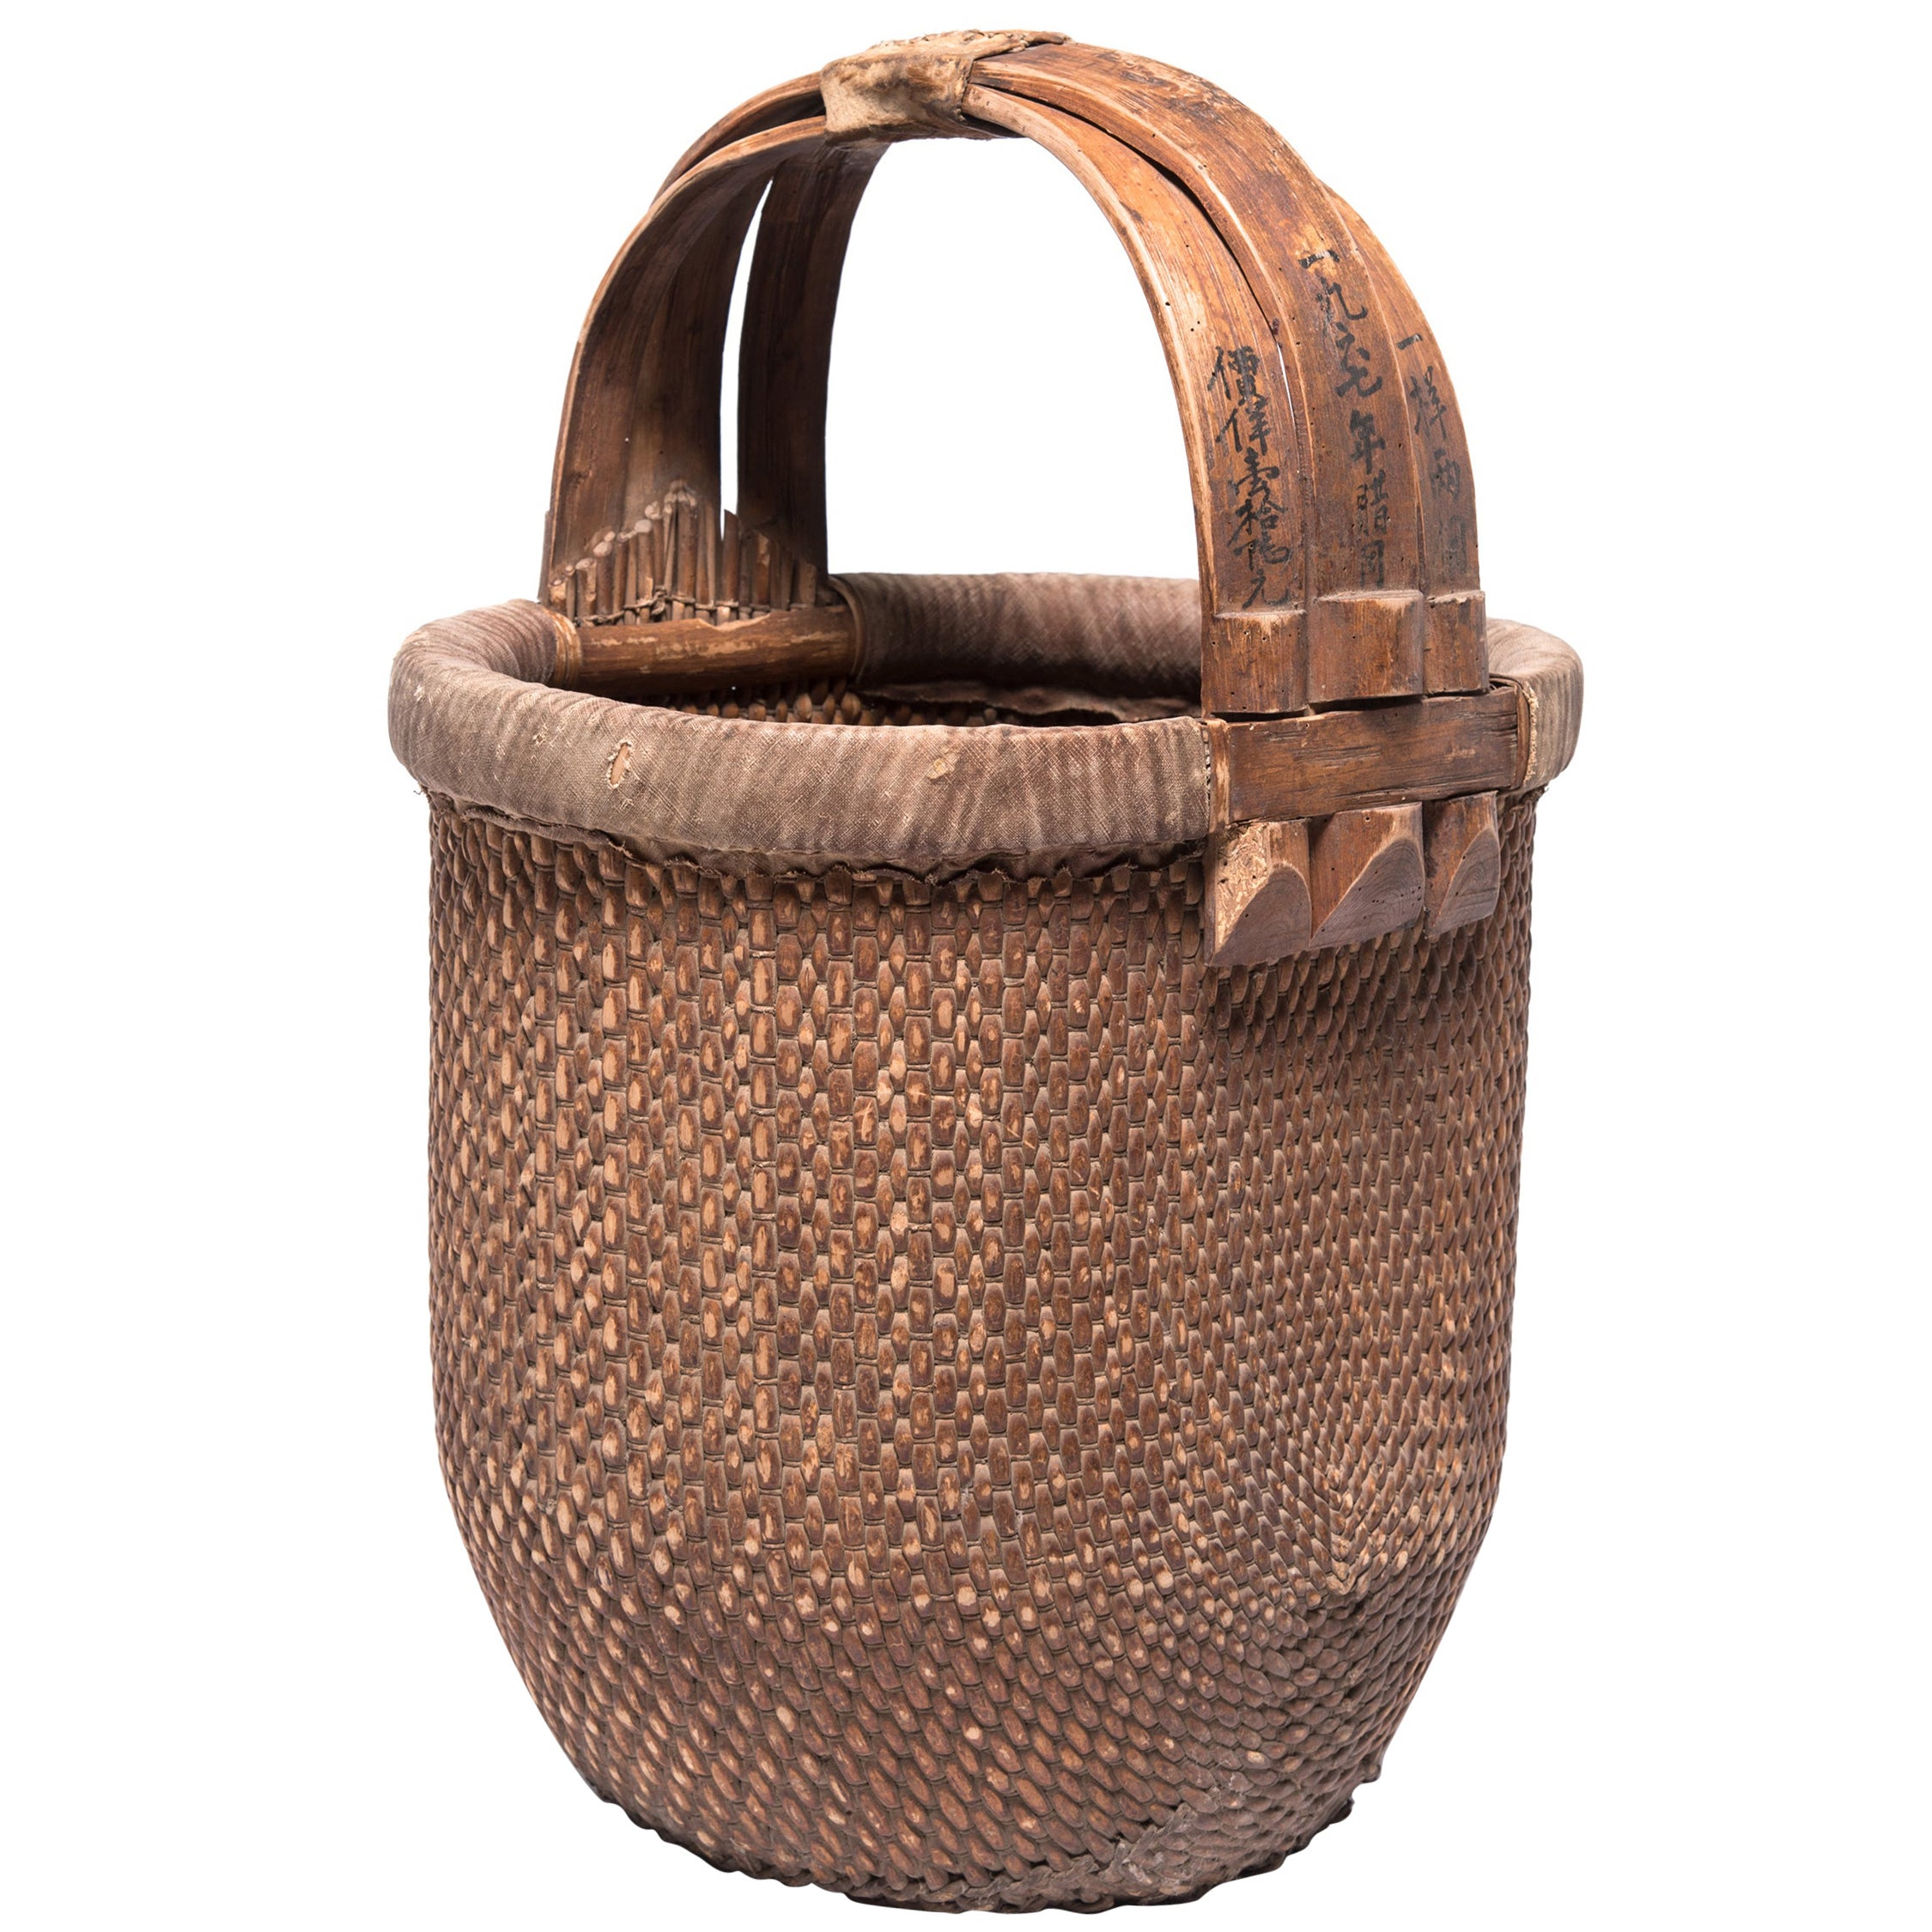 Chinese Bent Handle Basket, circa 1850